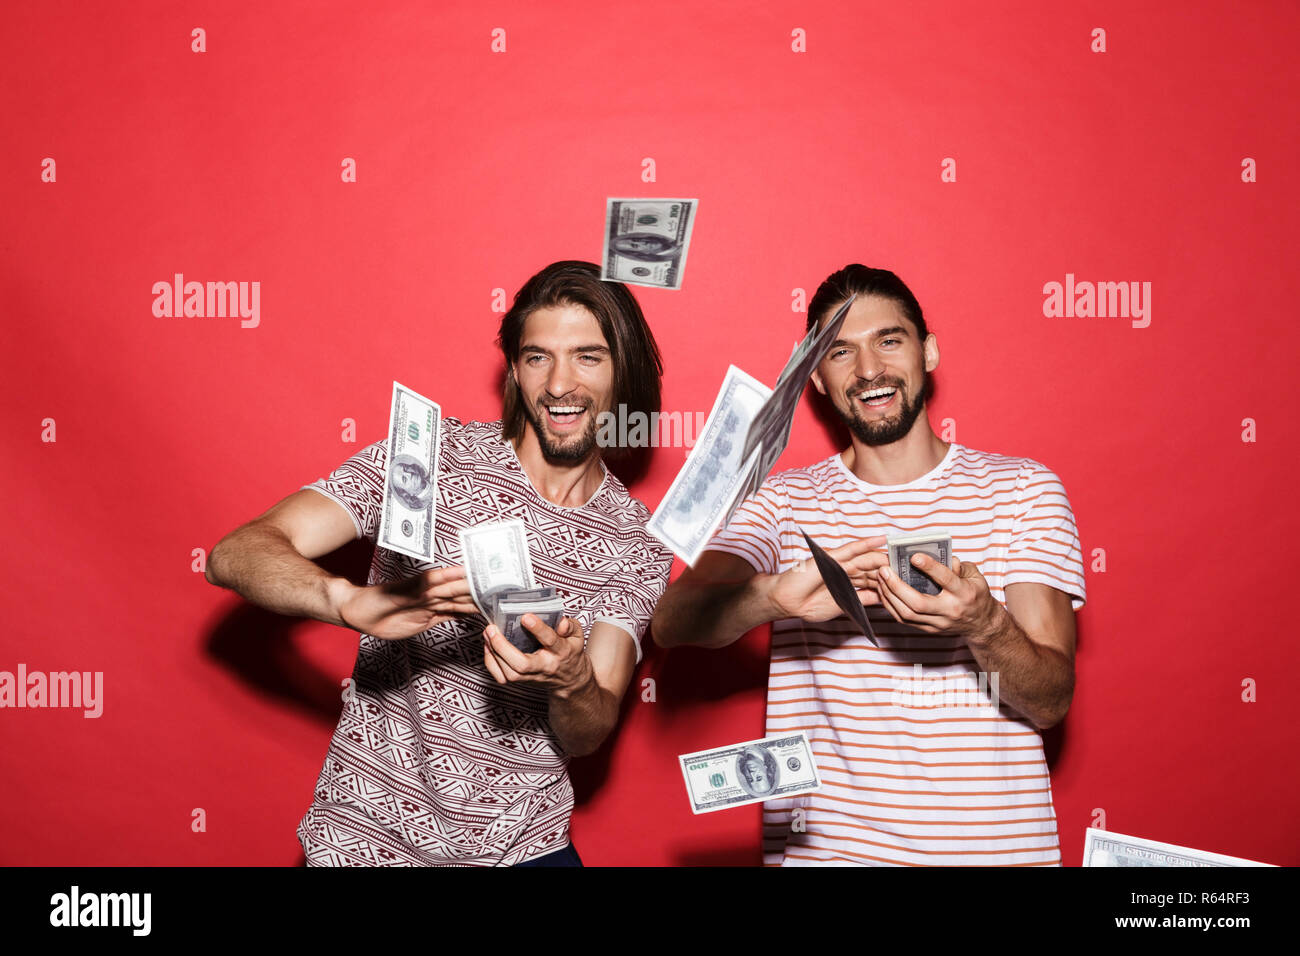 Portrait of a two young excited twin brothers isolated over red background, throwing out money banknotes - Stock Image